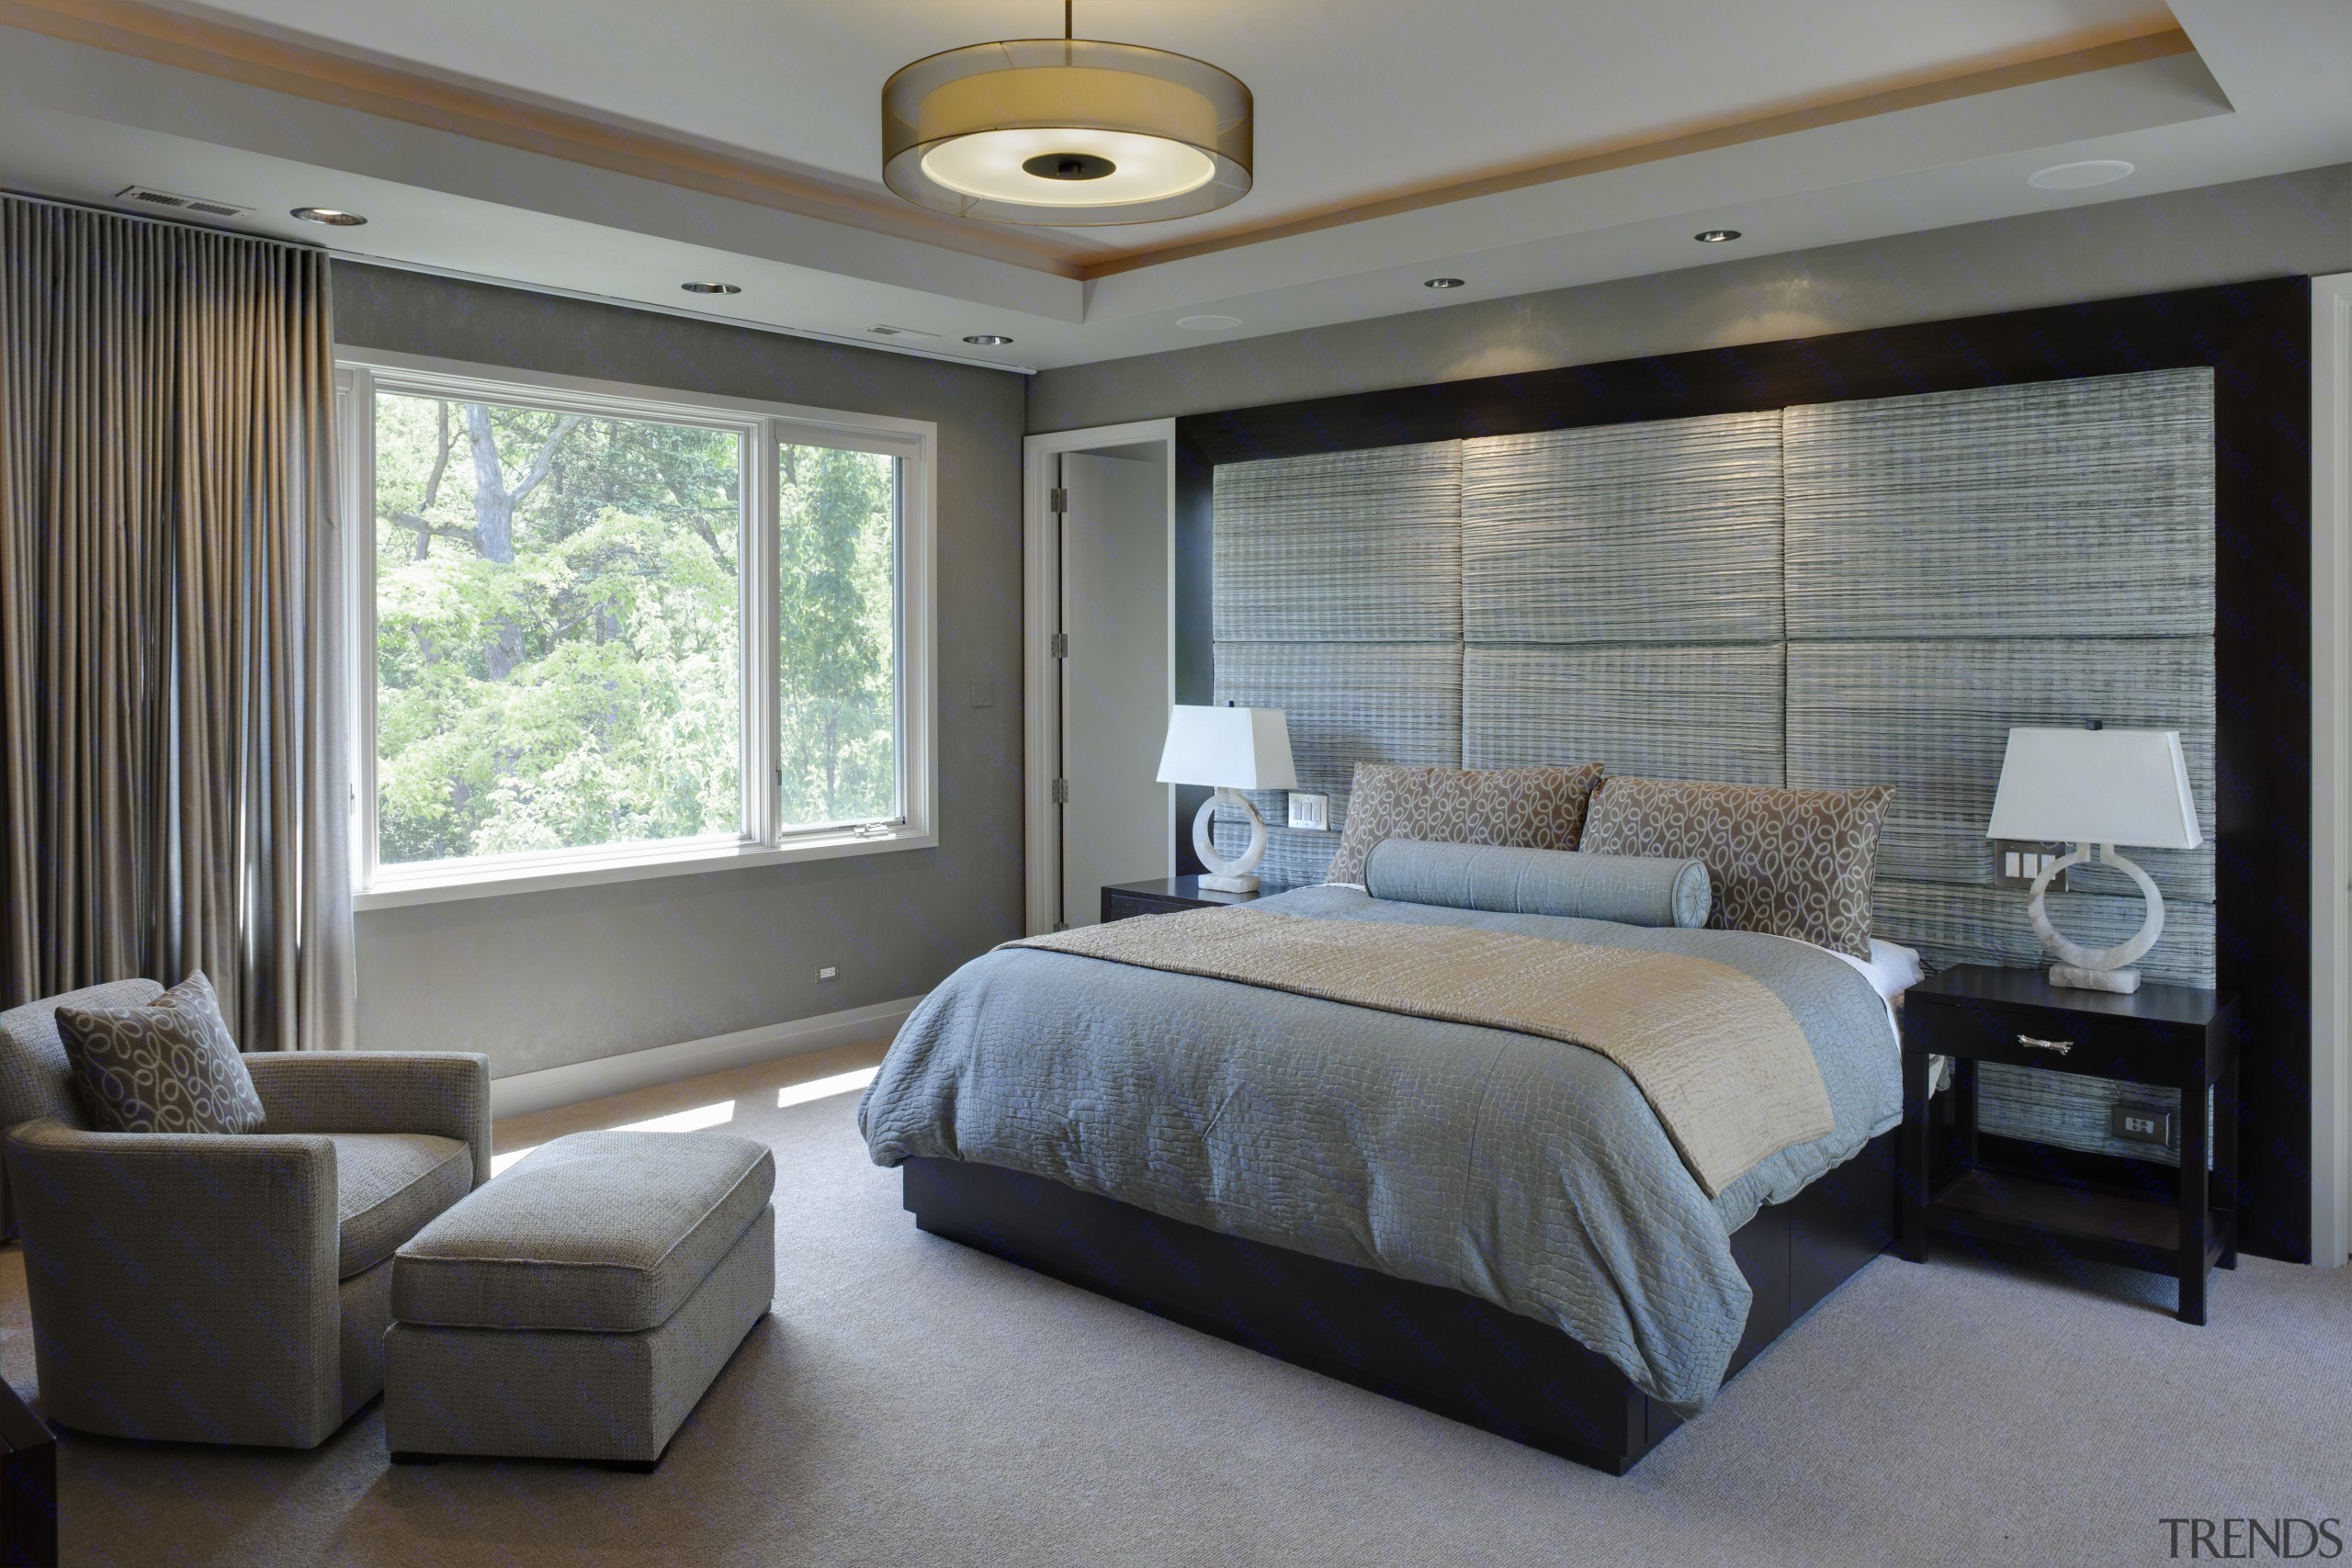 Greys and whites in linen and paints. large bed frame, bedroom, ceiling, home, interior design, real estate, room, wall, window, window covering, window treatment, gray